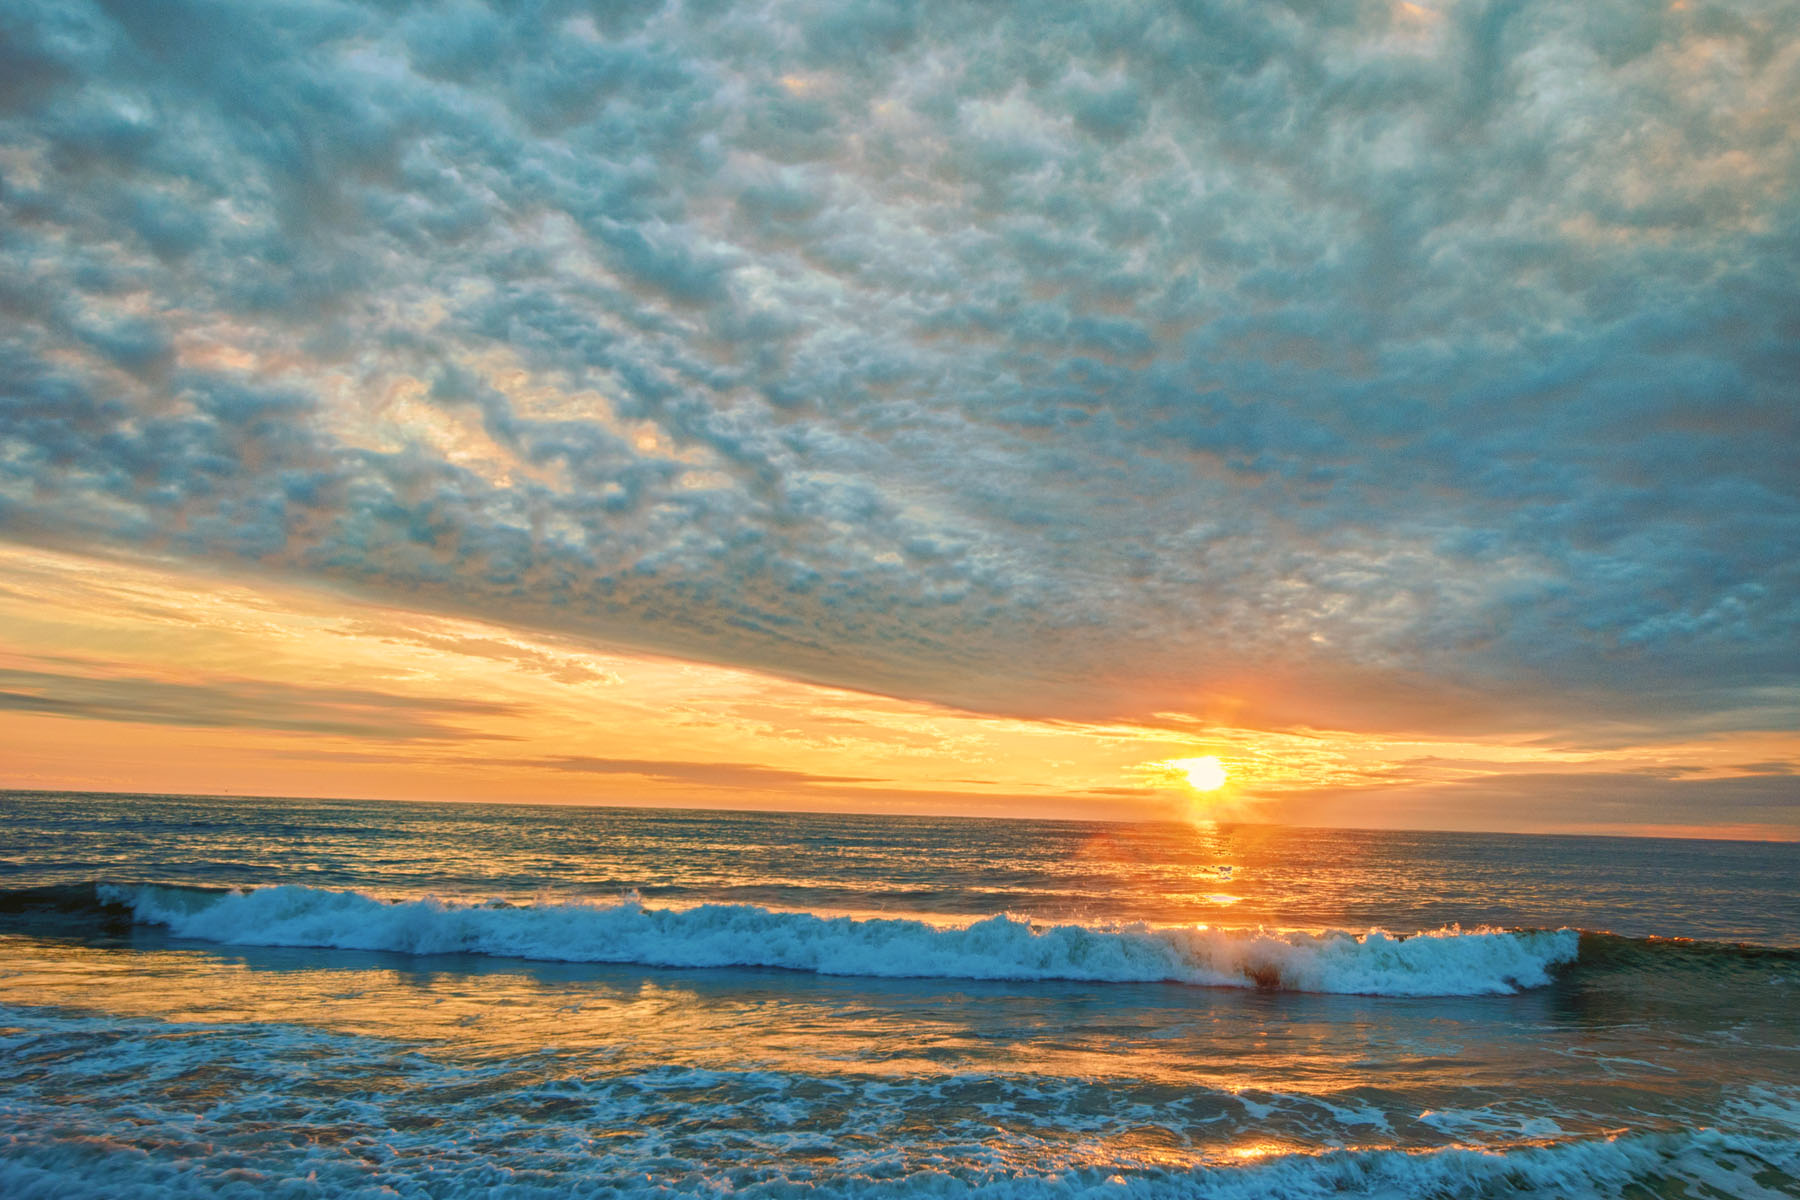 S Old Oregon Inlet Rd Nags Head Nc Usa Sunrise Sunset Times